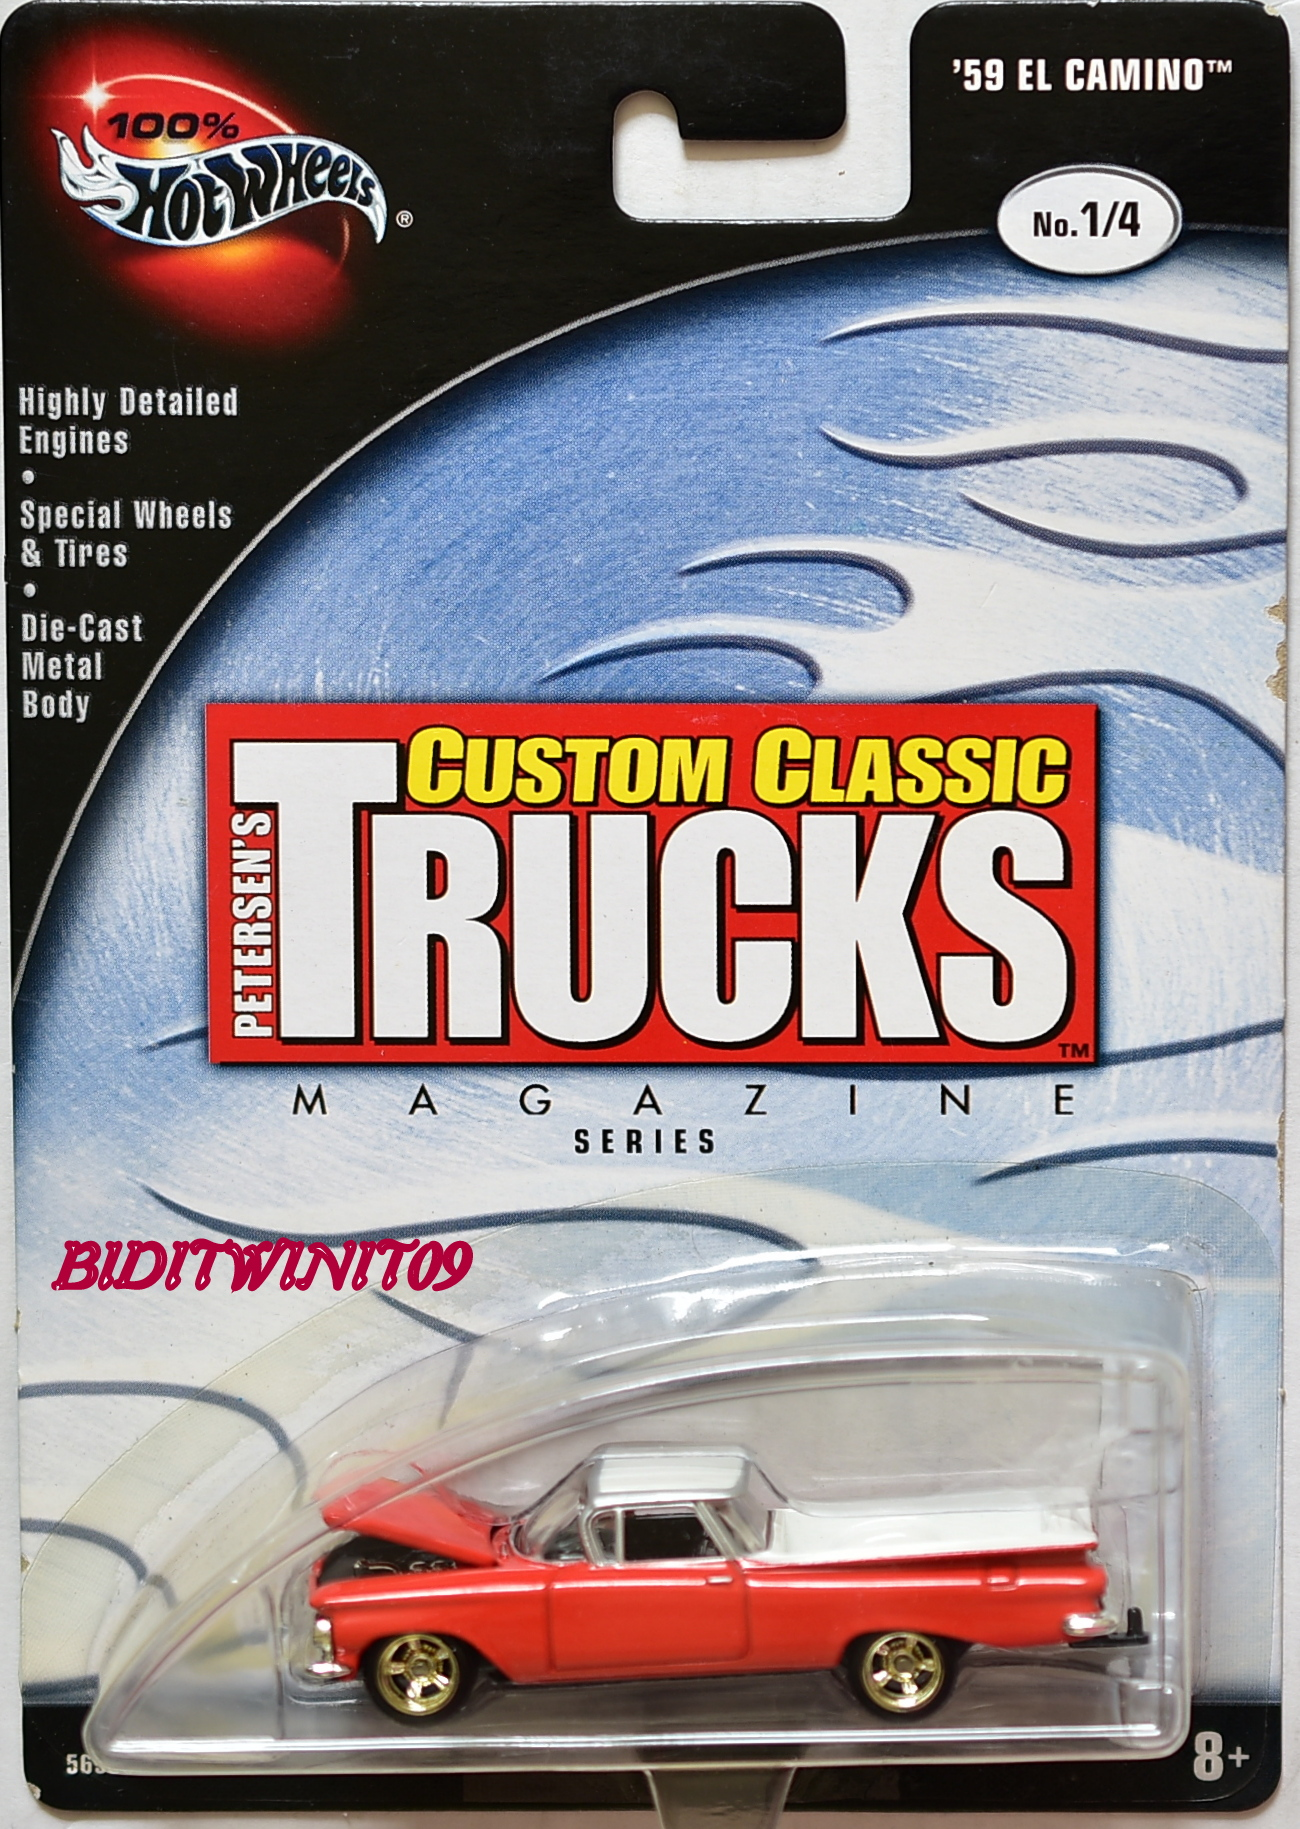 HOT WHEELS 100% CUSTOM CLASSIC TRUCKS '59 EL CAMINO #1/4 ORANGE E+